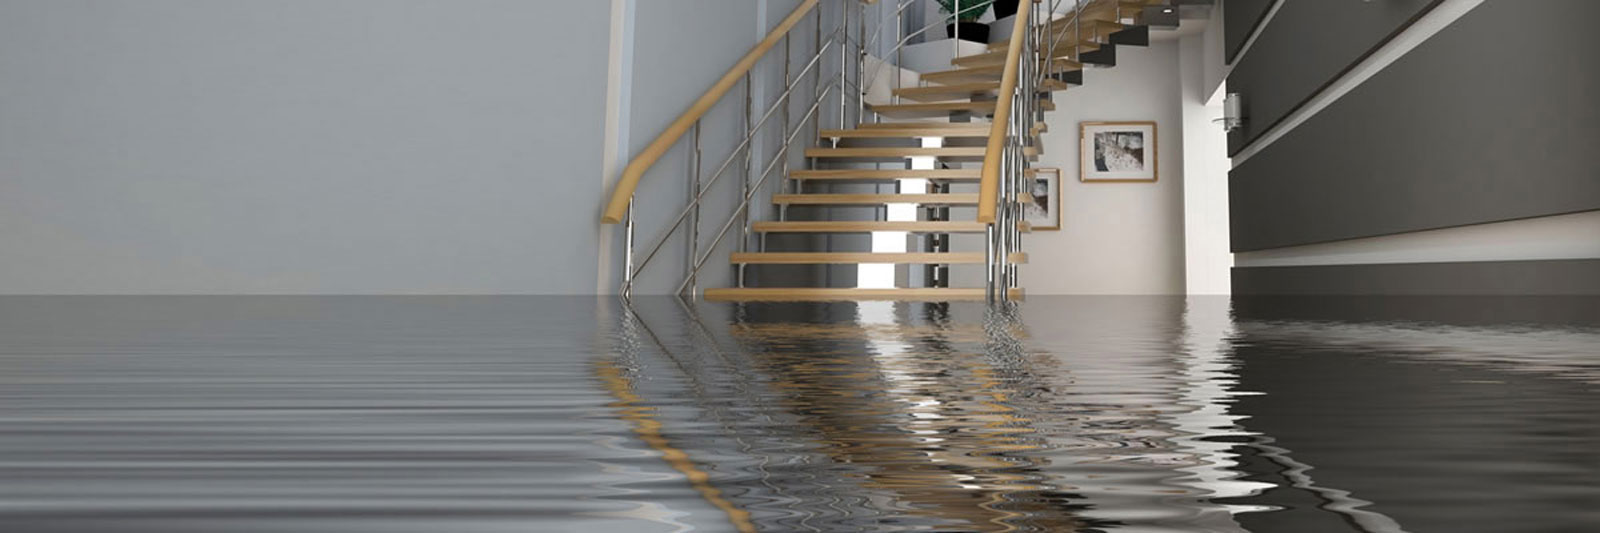 water damage carpet cleaning melbourne